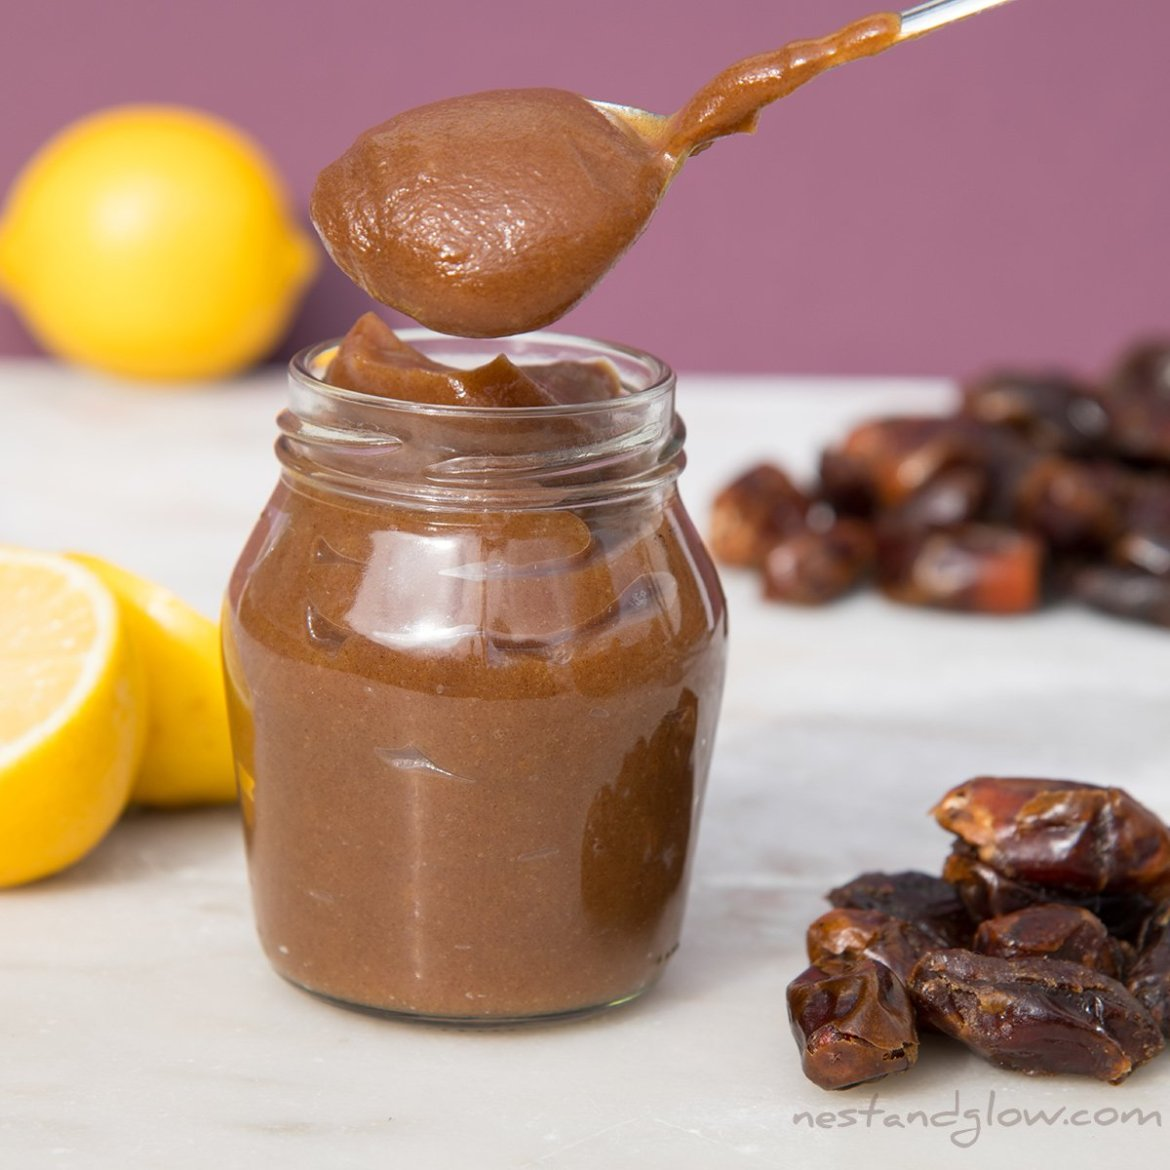 natural sweetener date syrup on a spoon